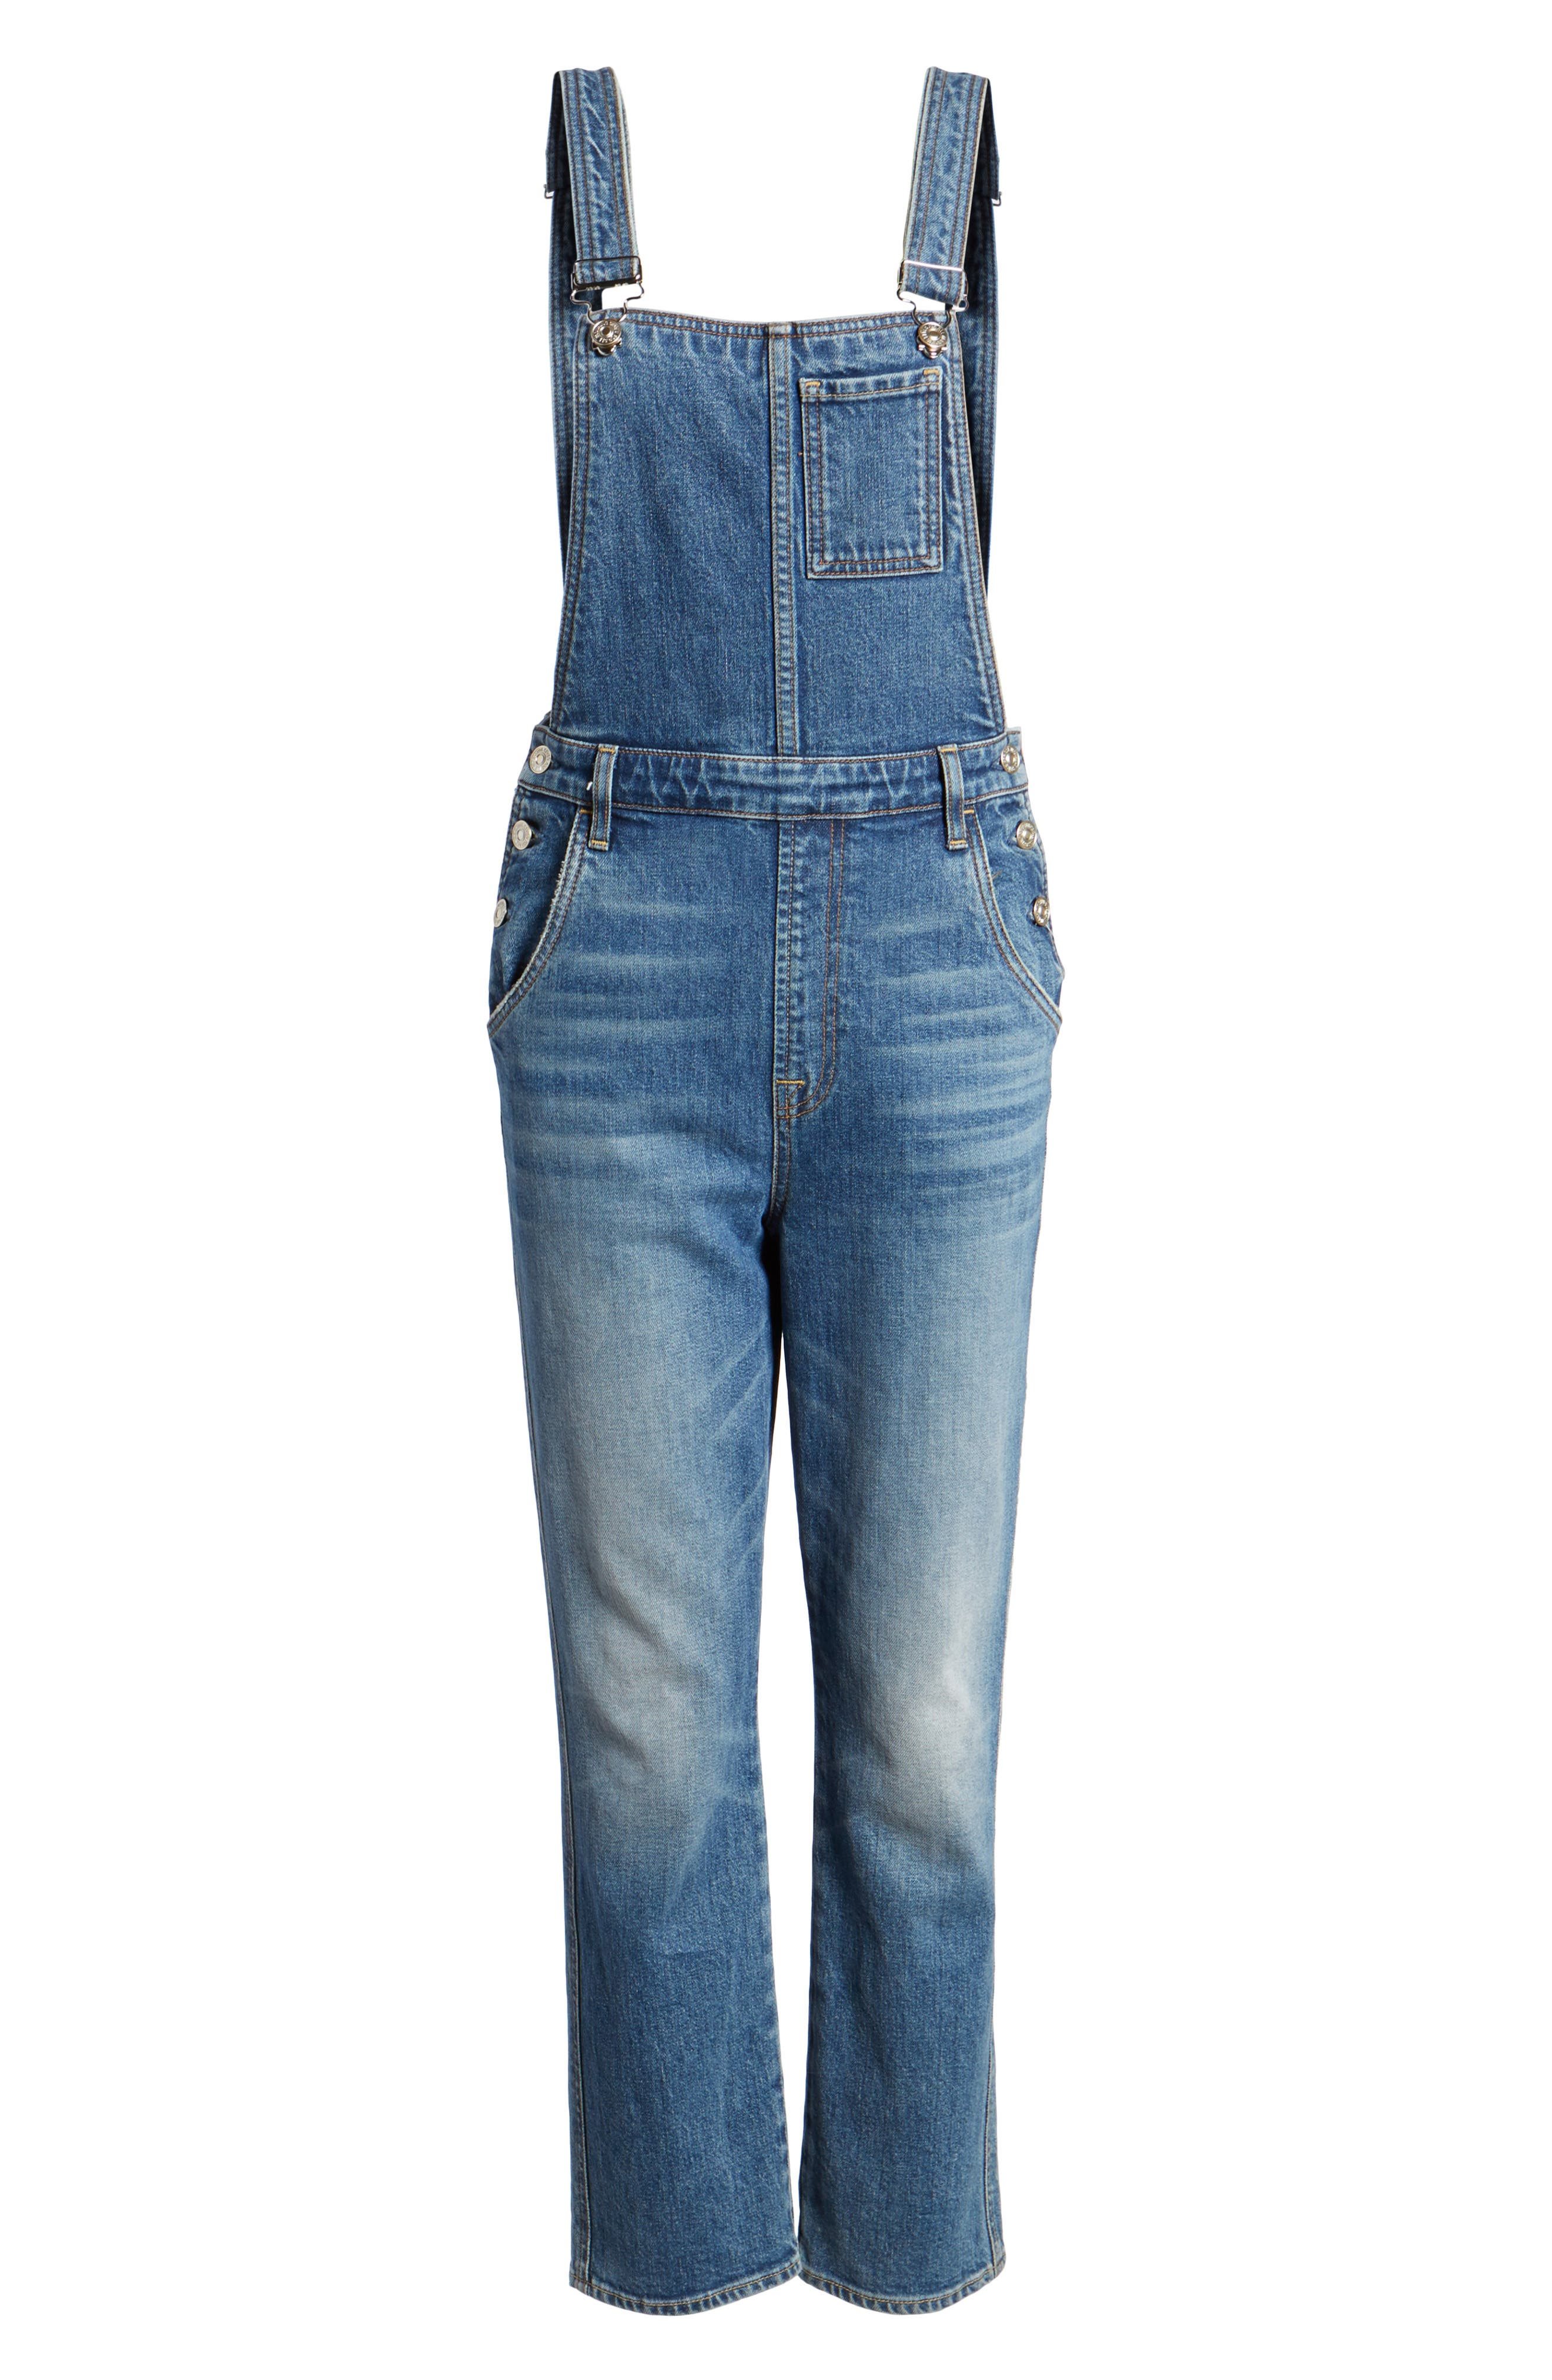 Edie Denim Overalls,                             Alternate thumbnail 6, color,                             401